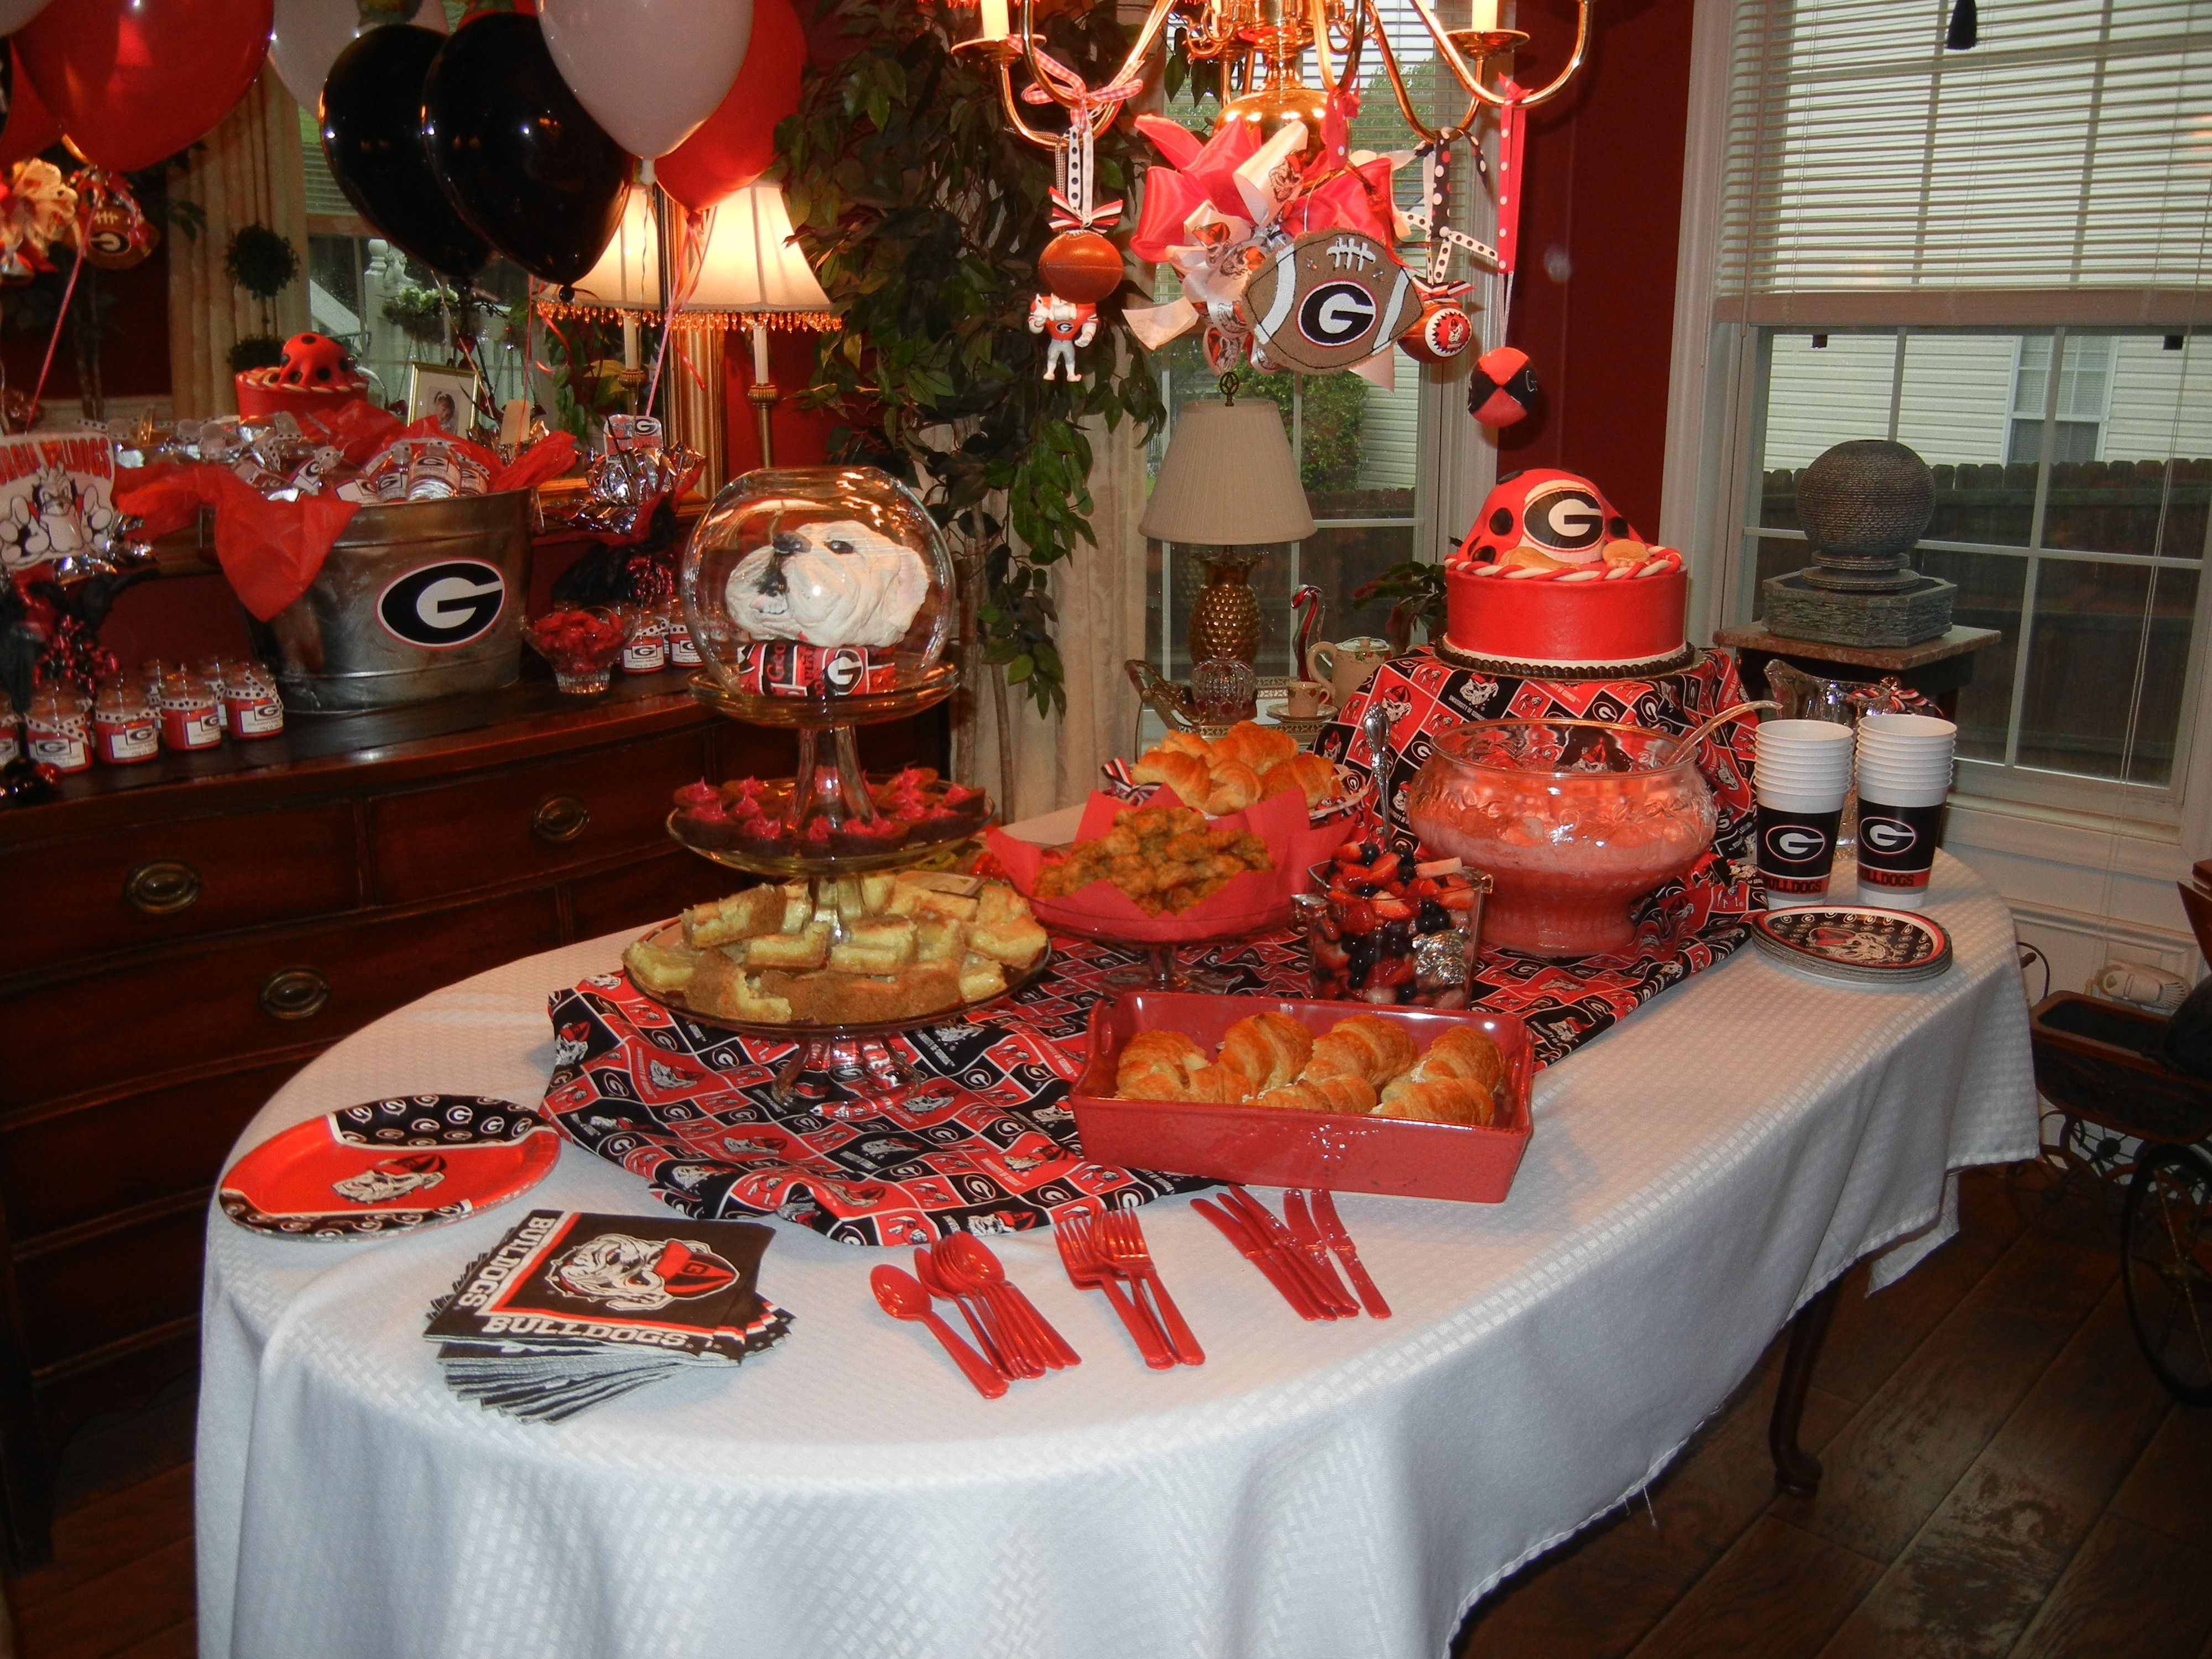 UGA Themed Baby Shower! Keeping This In Mind For If/when We Have Baby